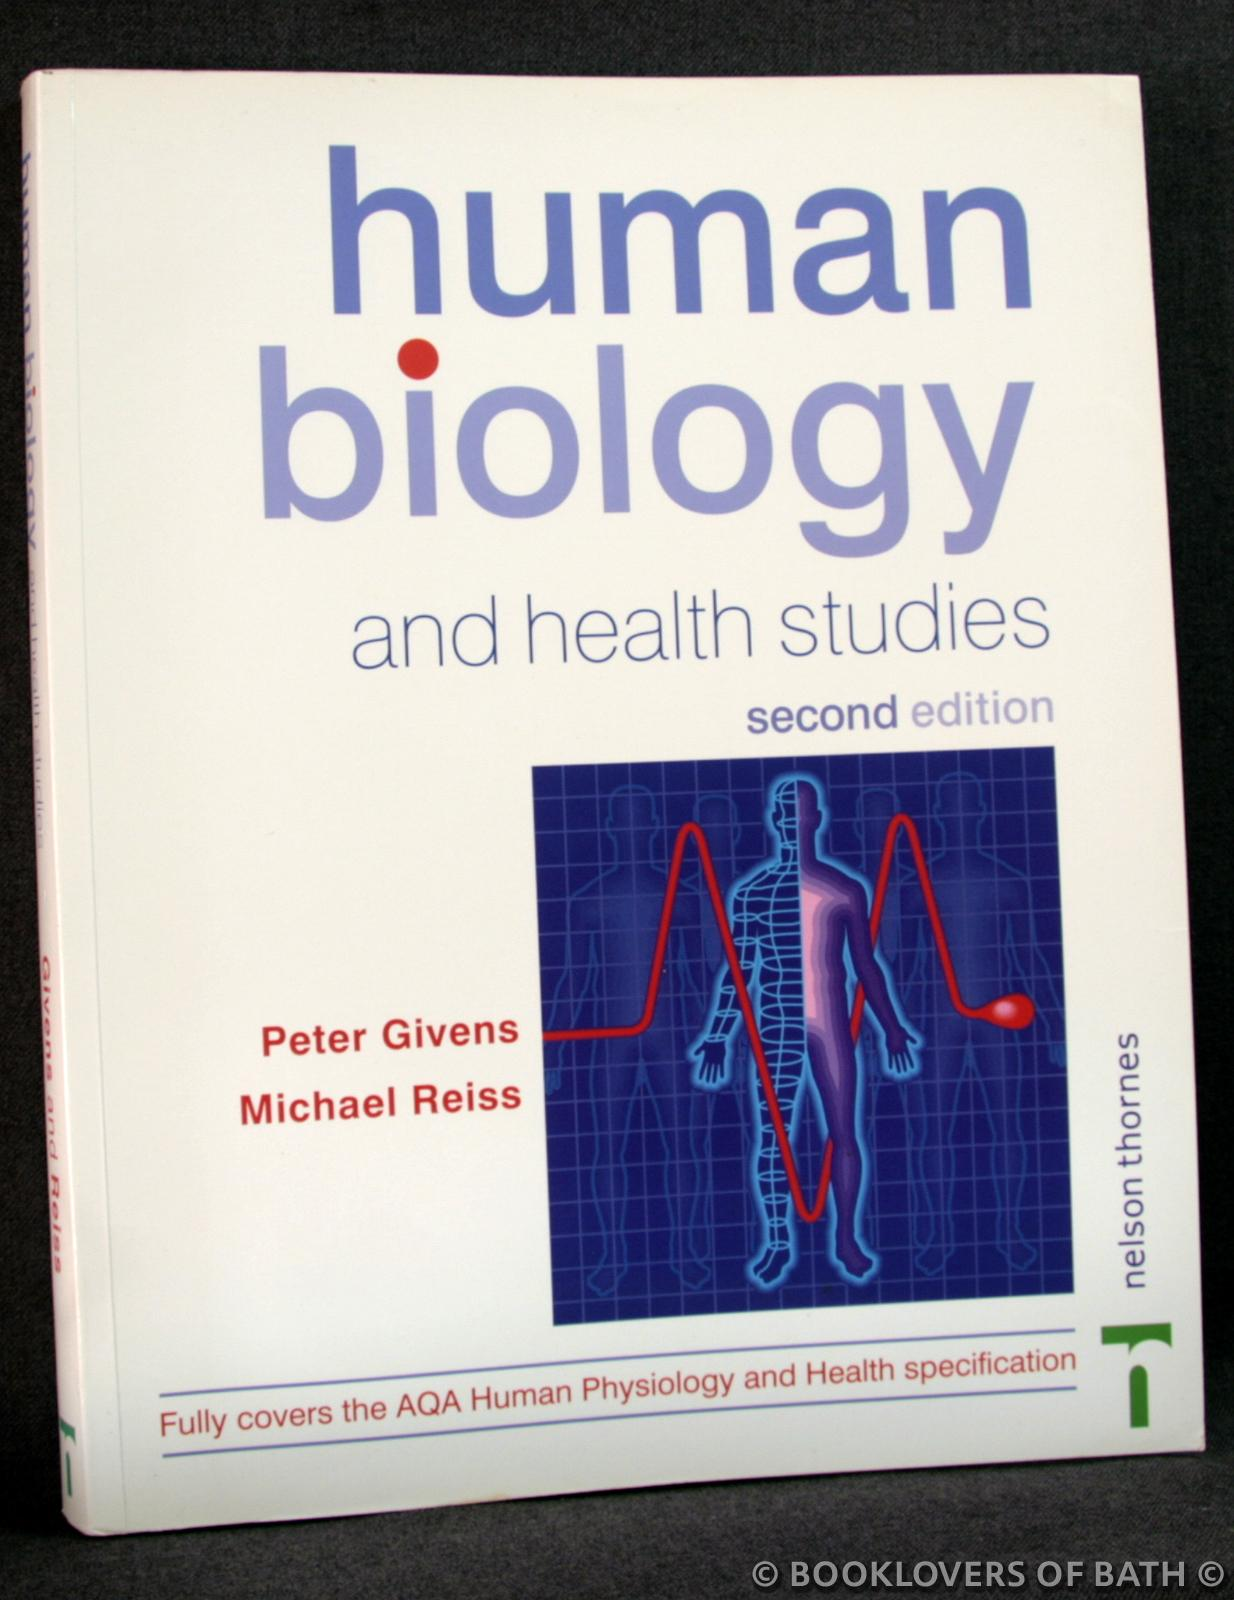 Human Biology and Health Studies - Peter Givens & Michael Reiss